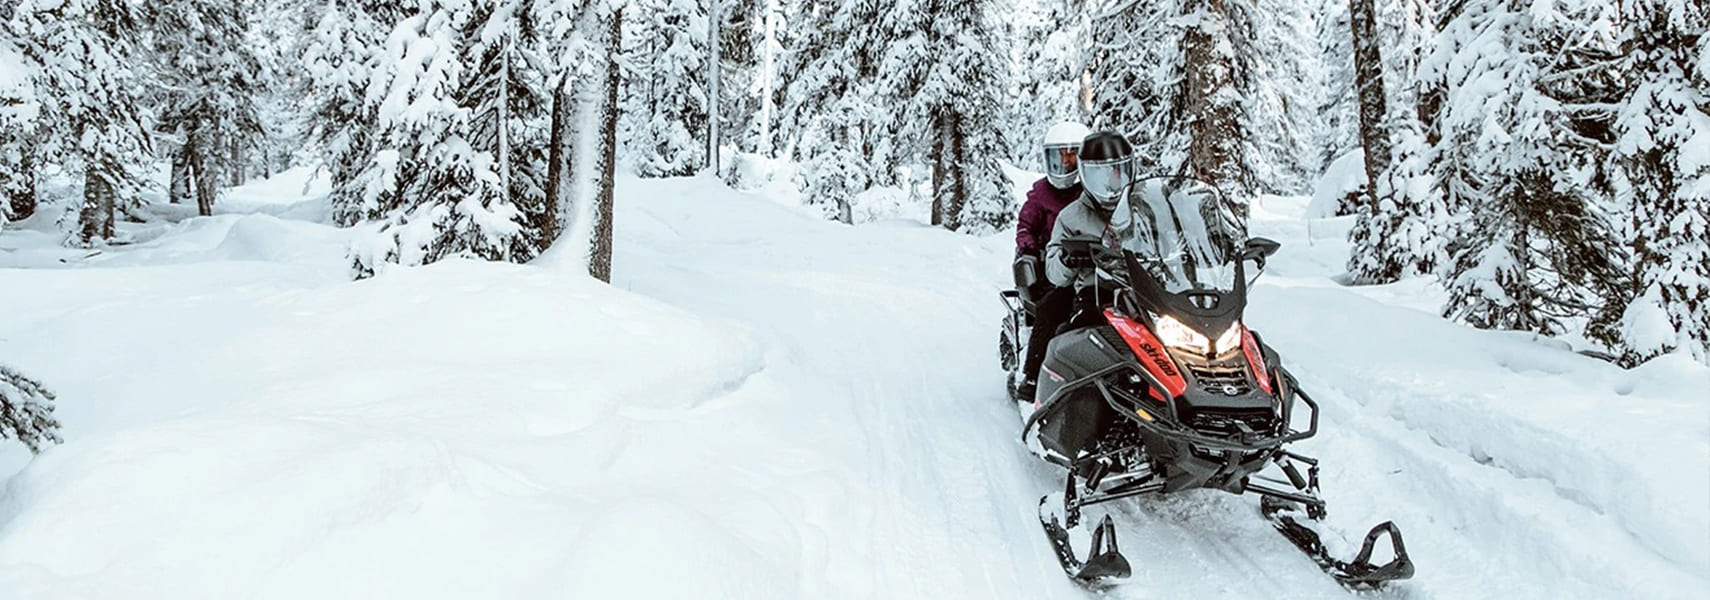 Ski-Doo - 2021 Expedition Xtreme